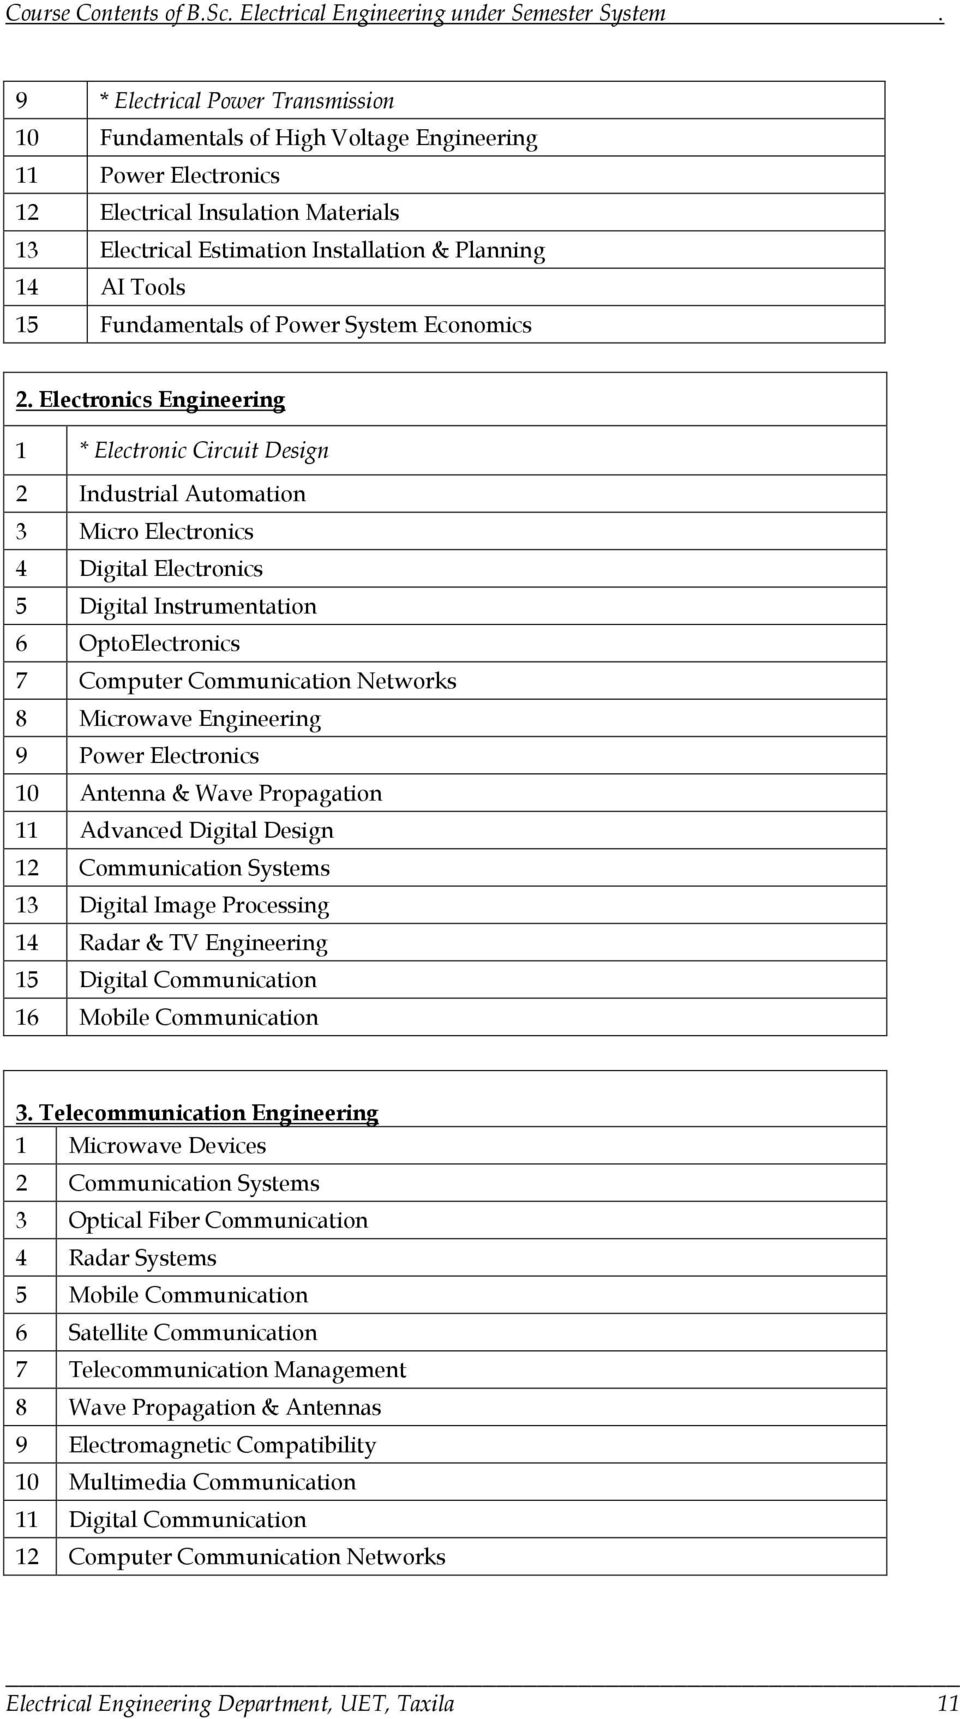 Electrical Engineering Department Pdf Electronic Circuits Analysis By Rashid Electronics 1 Circuit Design 2 Industrial Automation 3 Micro 4 Digital